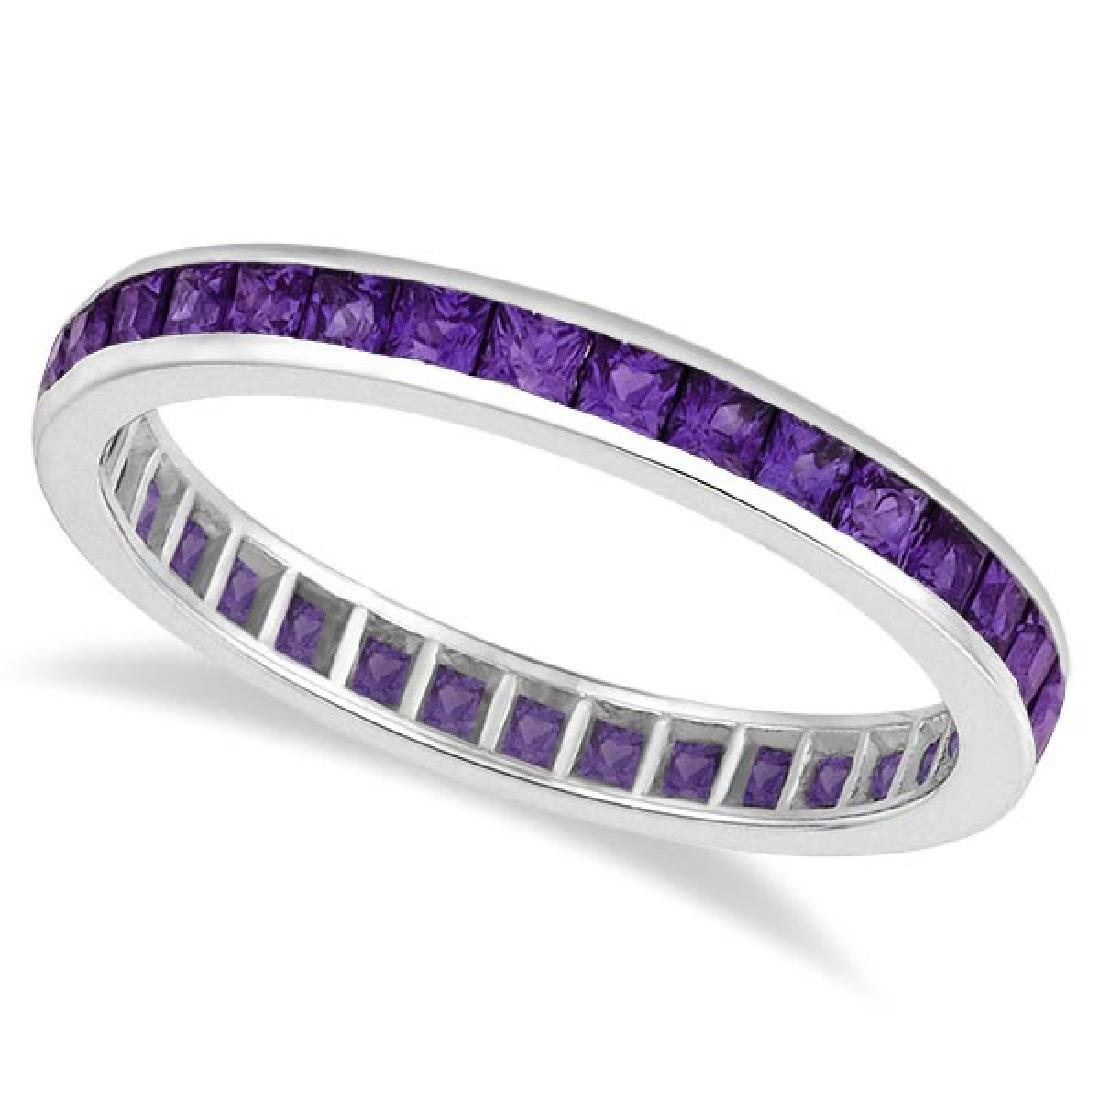 Princess-Cut Amethyst Eternity Ring Band 14k White Gold